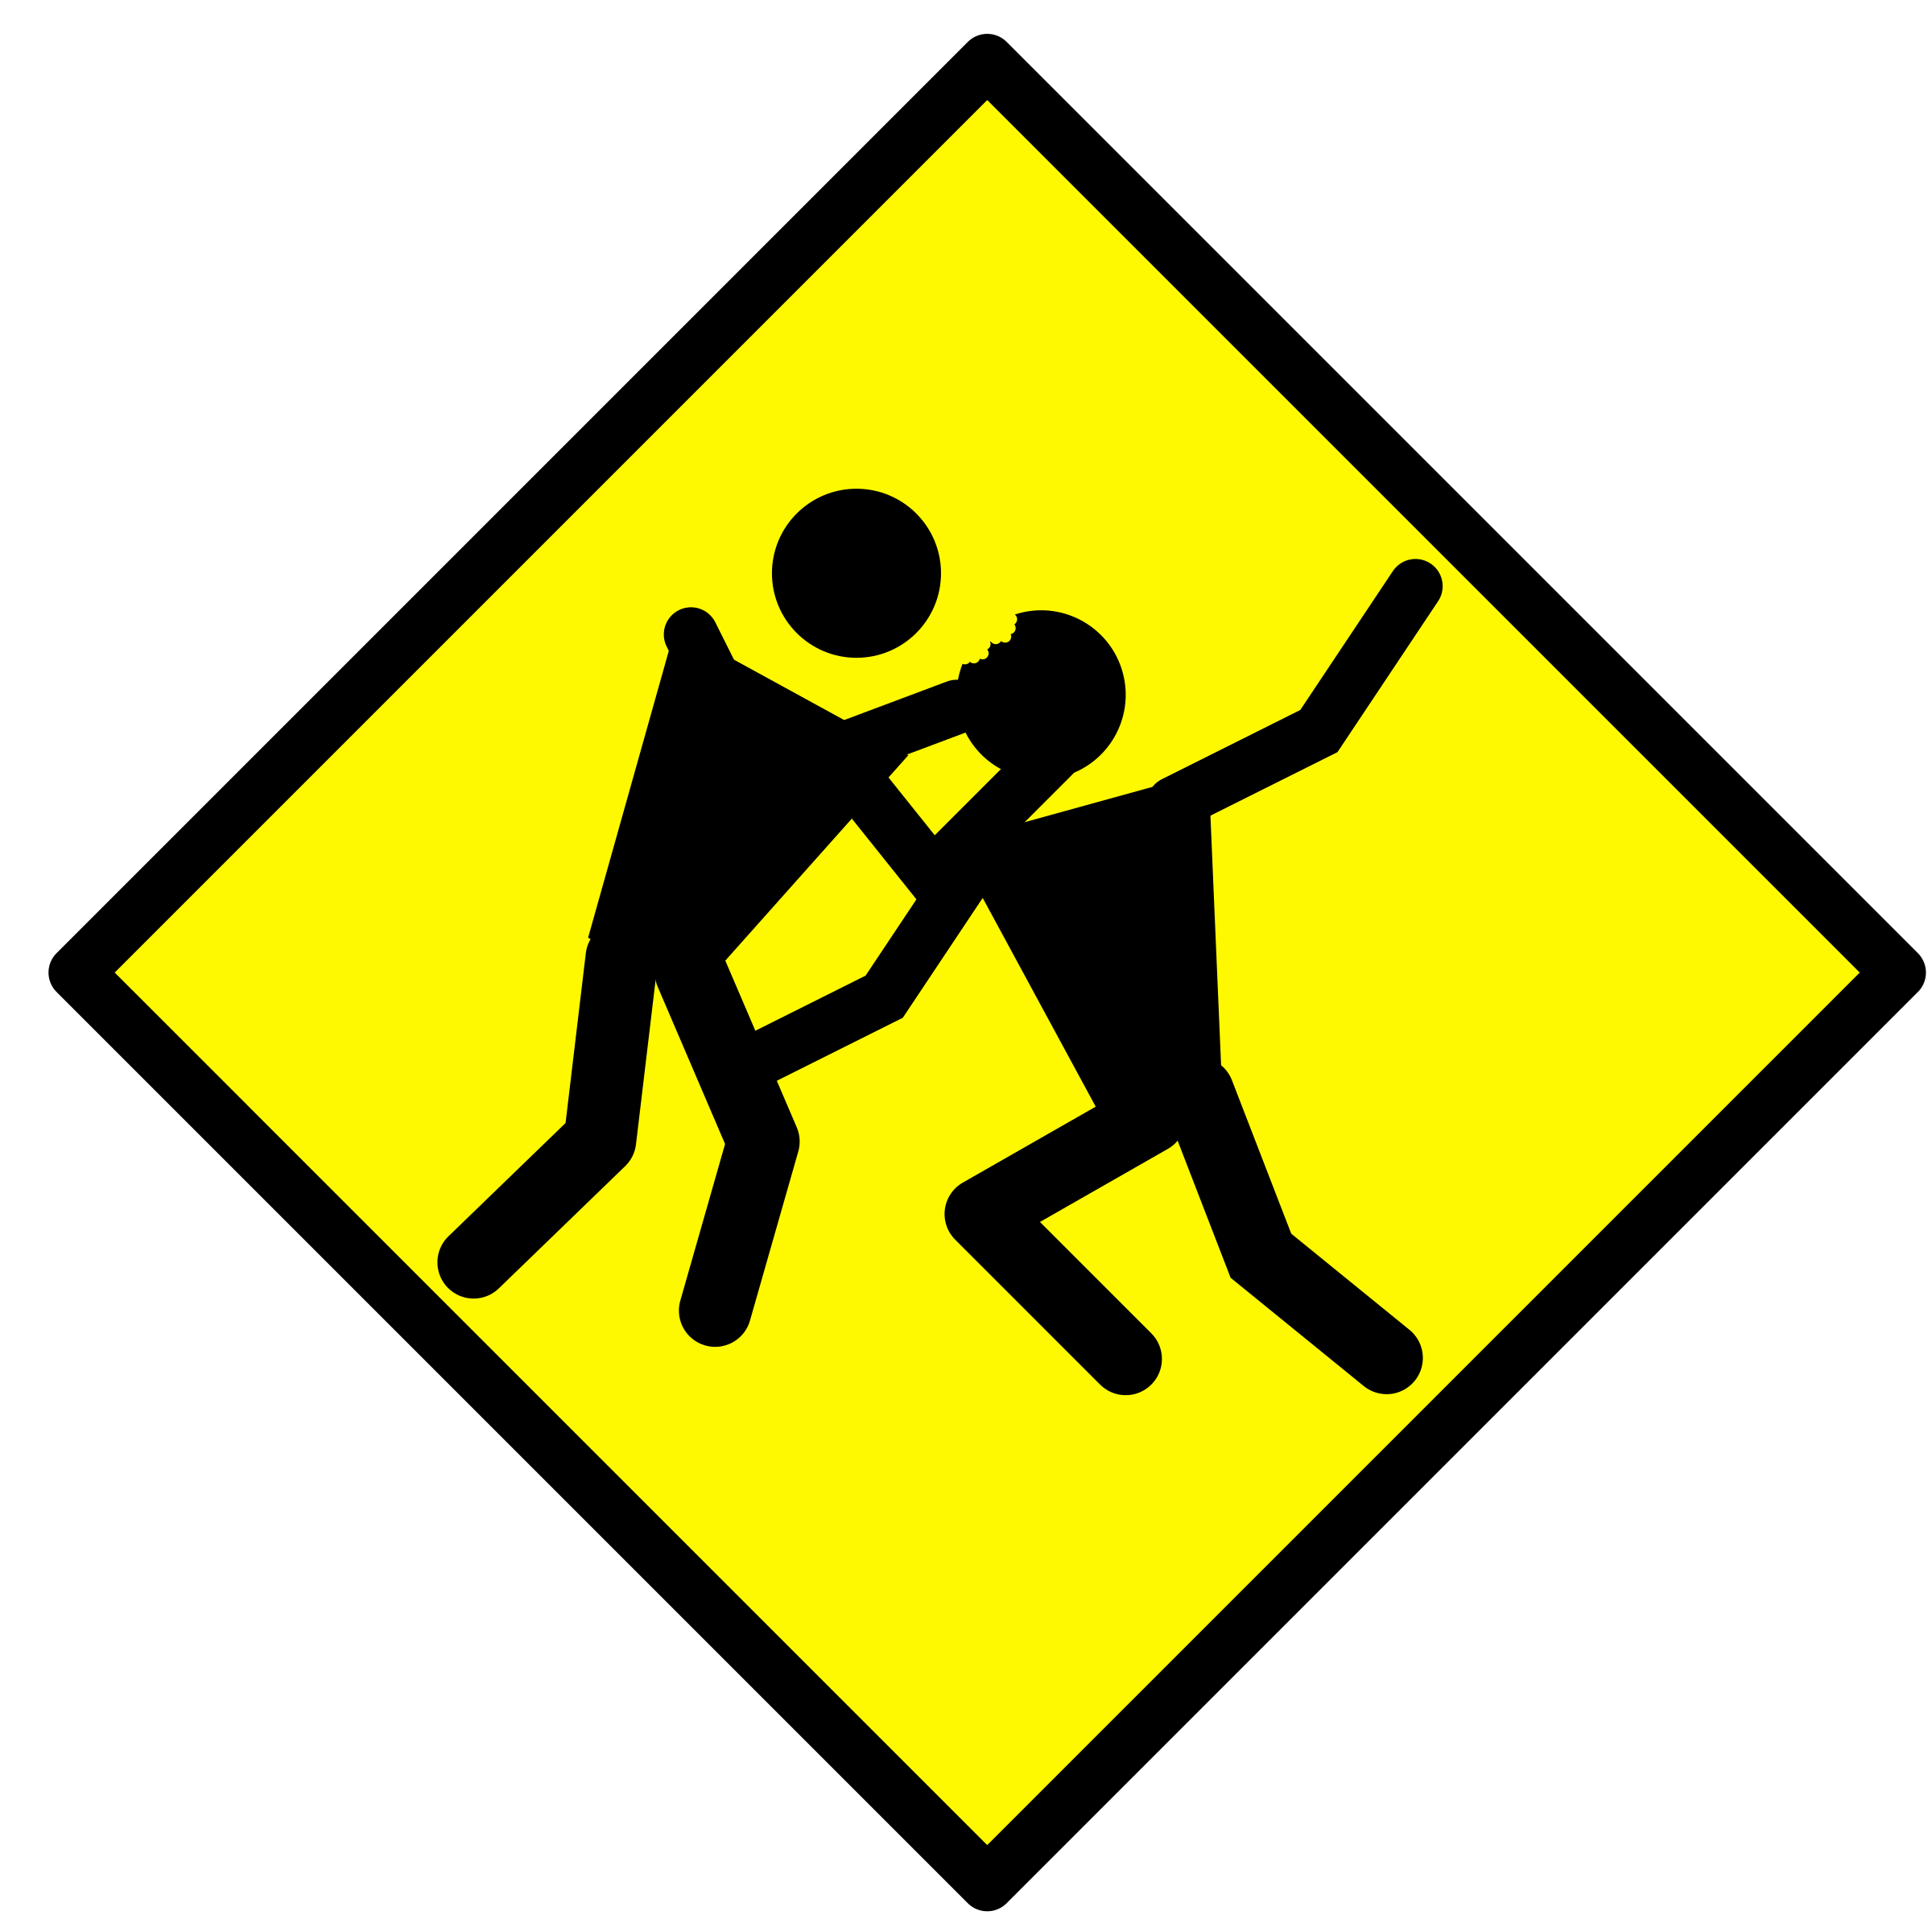 Zombie Warning Road Sign by bnielsen